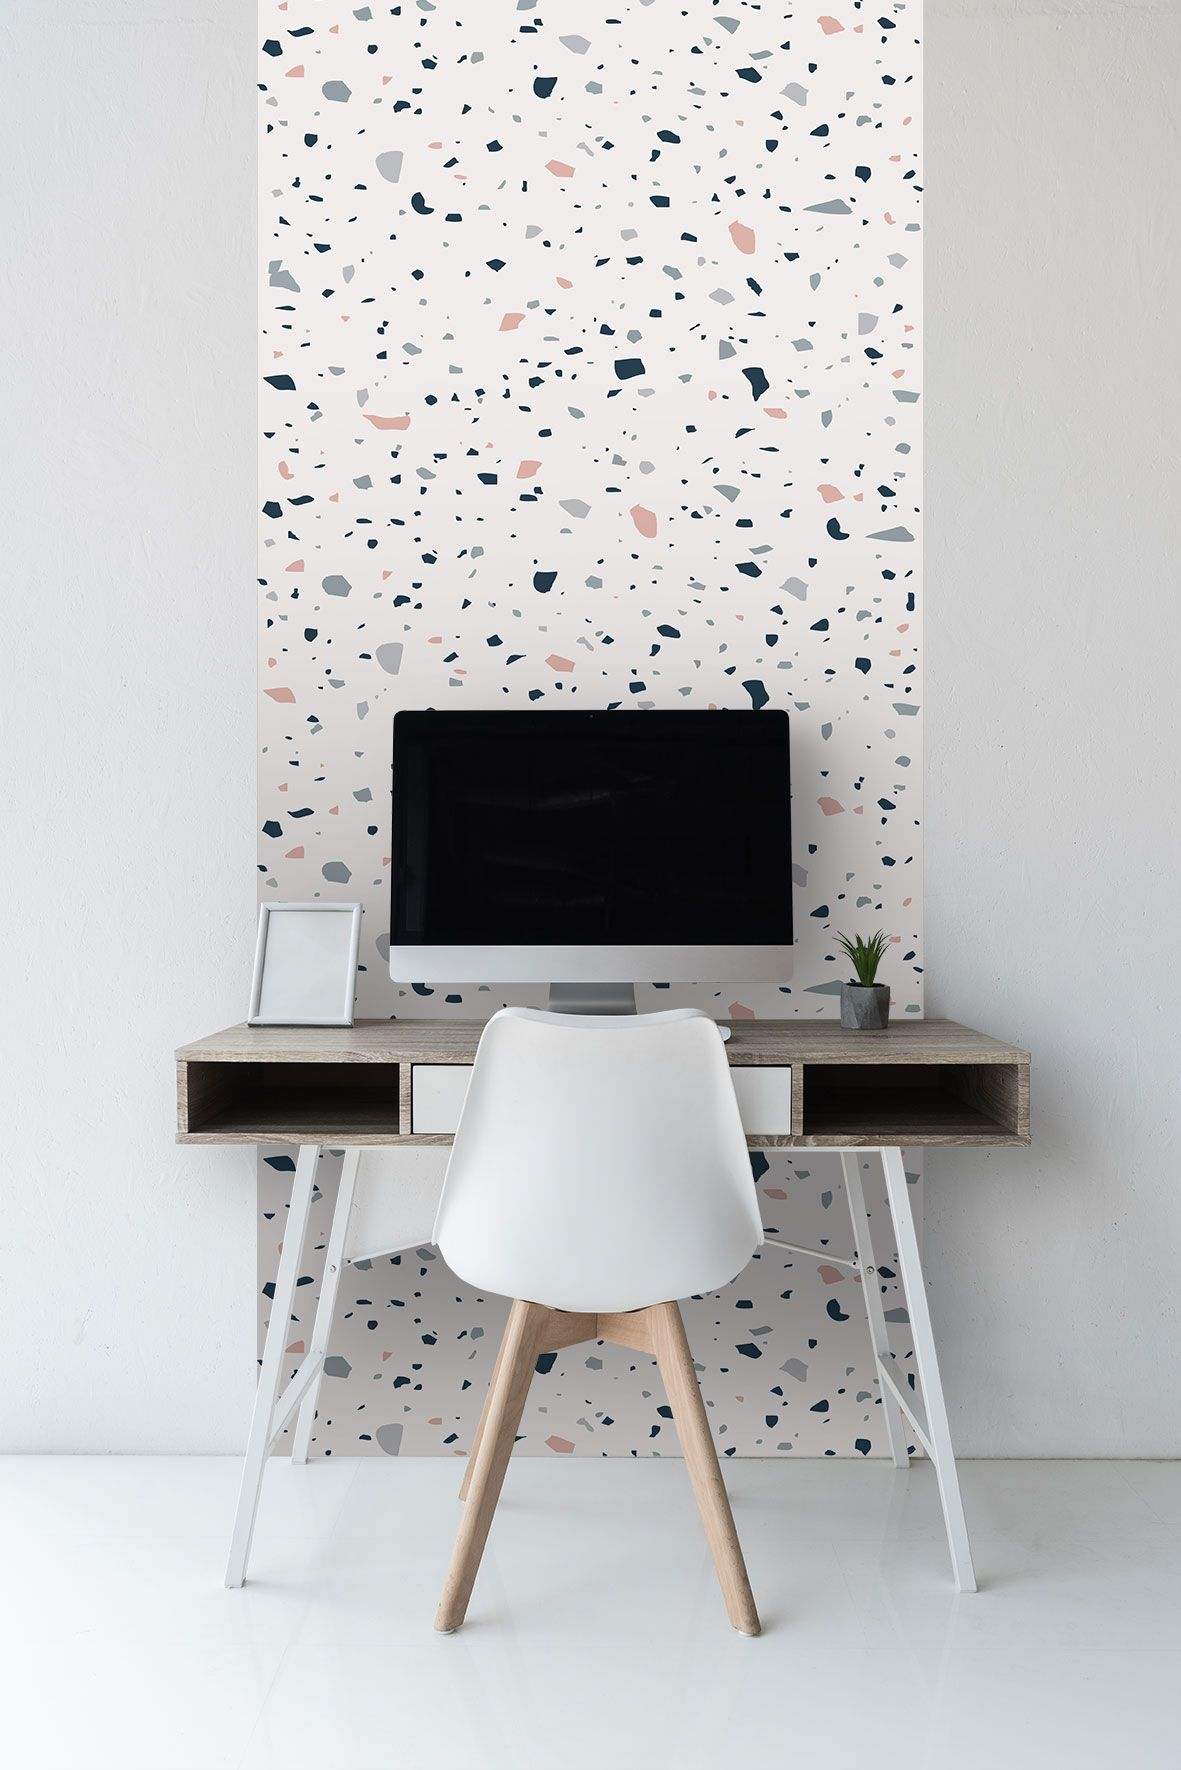 Sticker wallpaper easy DIY apply Paper free peel and stick